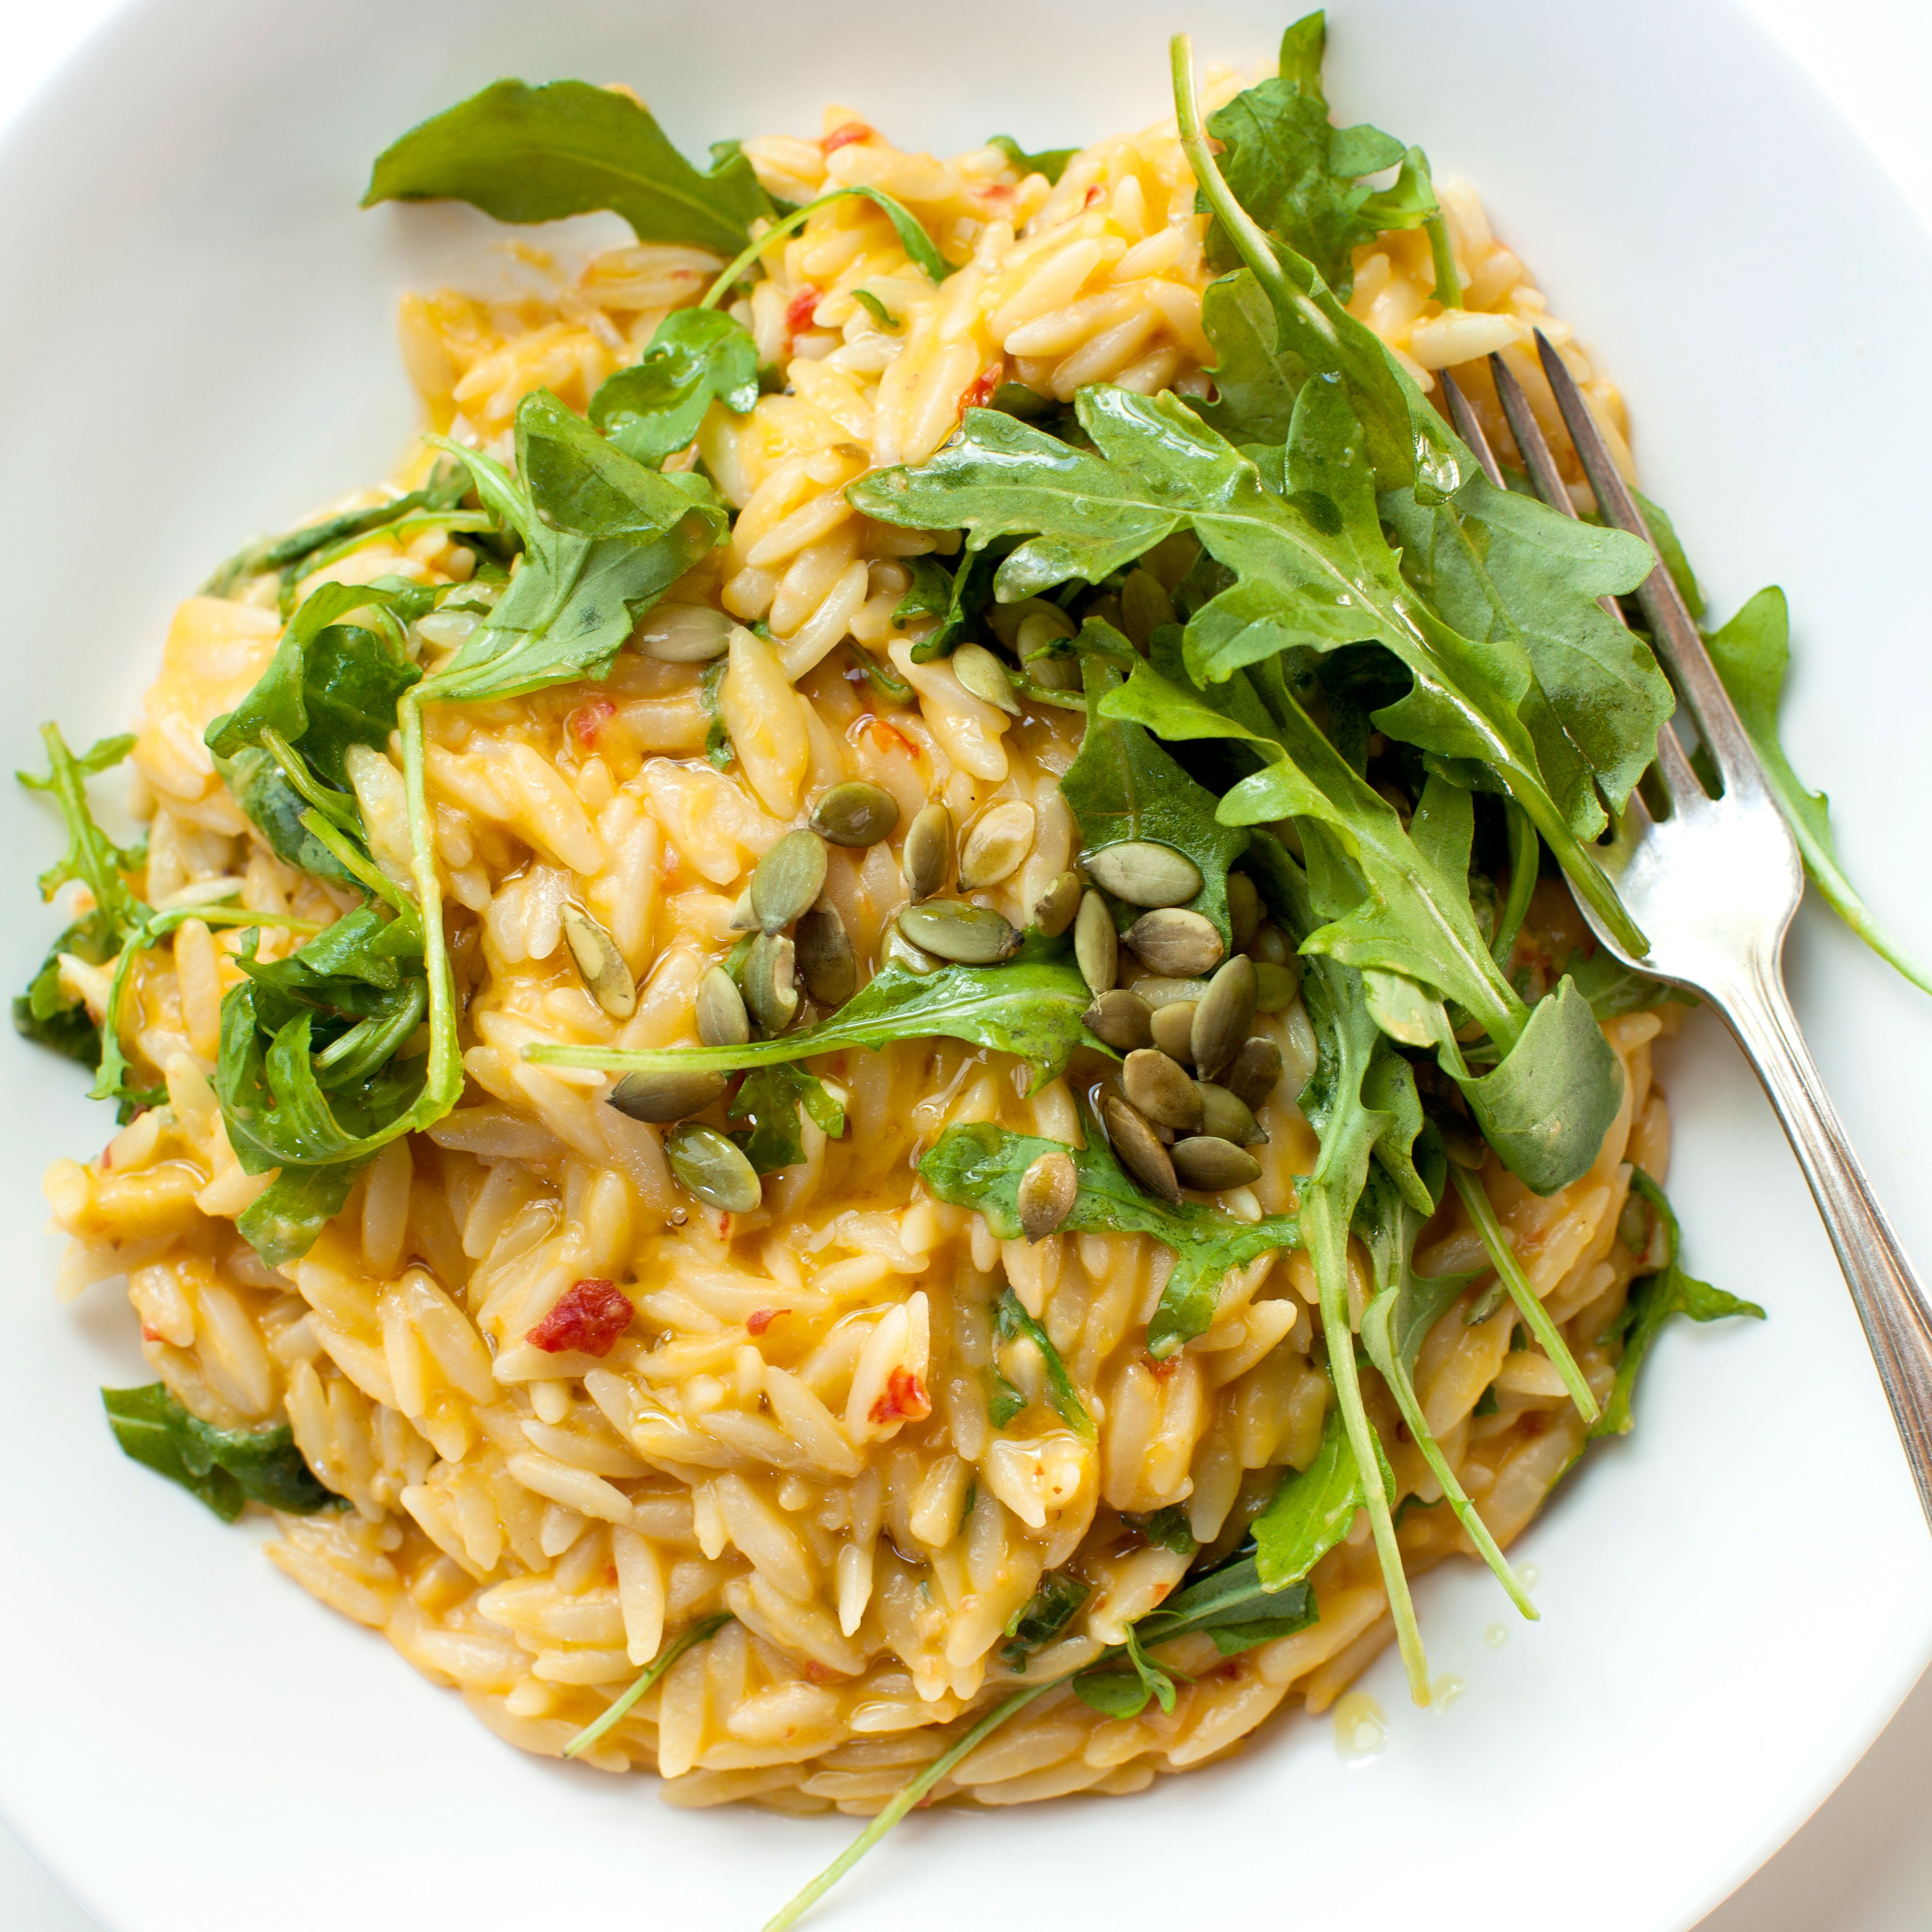 Cheddar cheese and Pumpkin puree combine together to make a very velvety and delicious sauce for this warm orzo and arugula pasta salad.